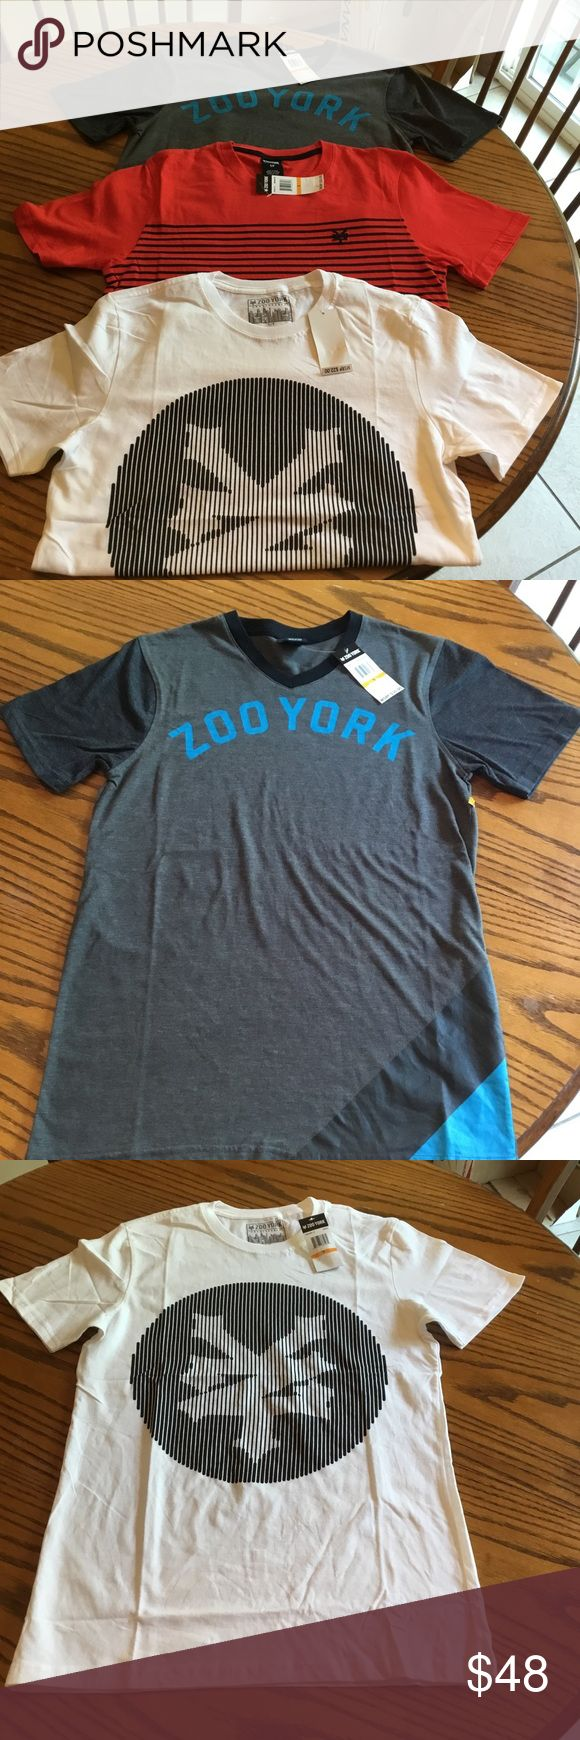 Lot of 3 Zoo York T-shirts All in perfect new condition. Smoke free home. Zoo York Shirts Tees - Short Sleeve